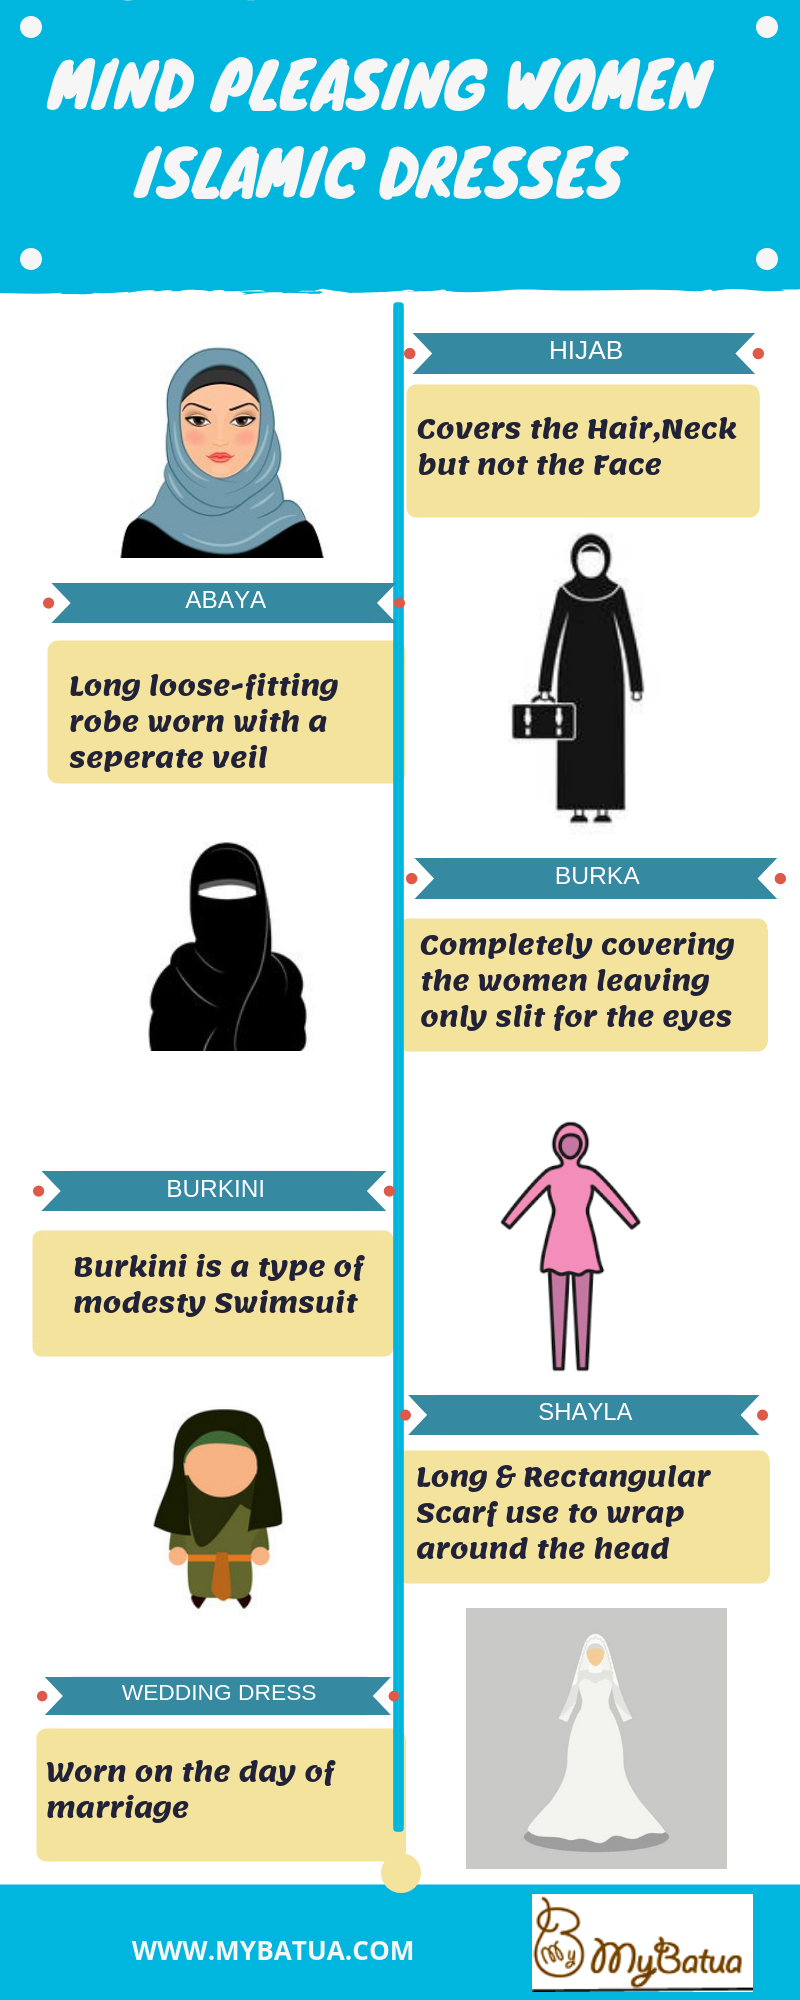 Mind Pleasing Women Islamic Dresses